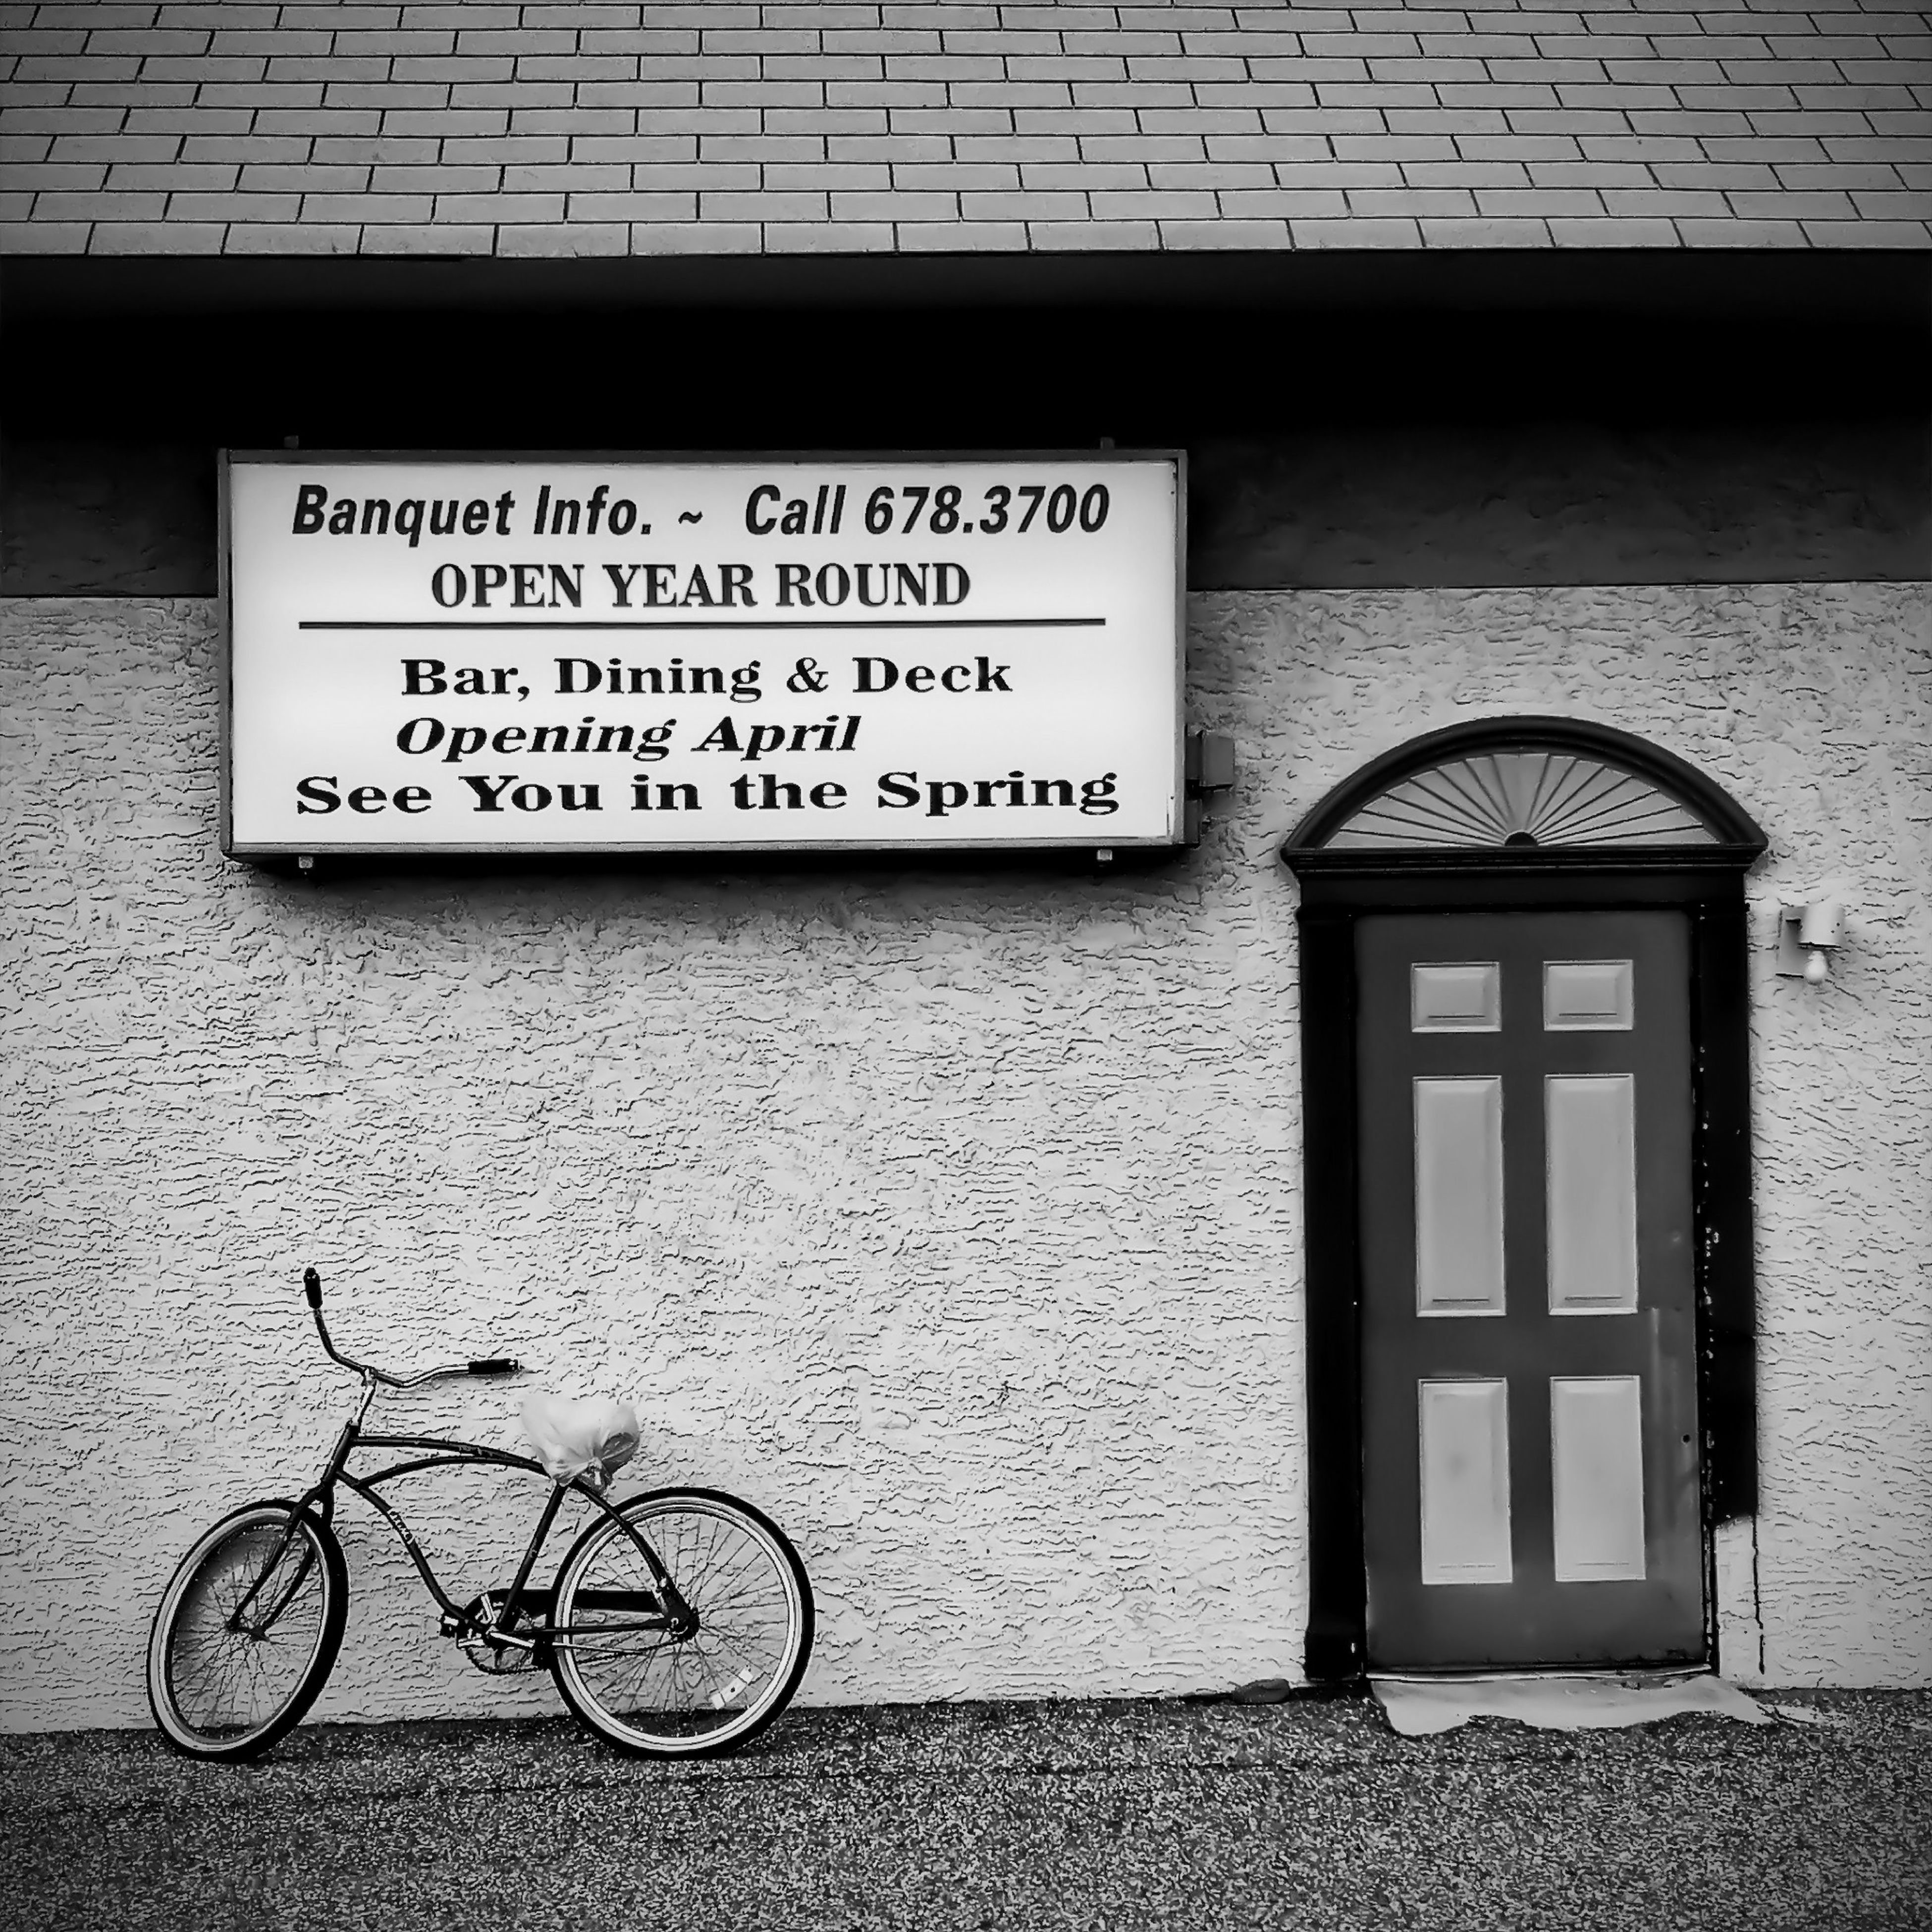 text, bicycle, western script, communication, architecture, building exterior, built structure, transportation, information sign, capital letter, wall - building feature, sign, mode of transport, street, information, non-western script, land vehicle, window, city, parking